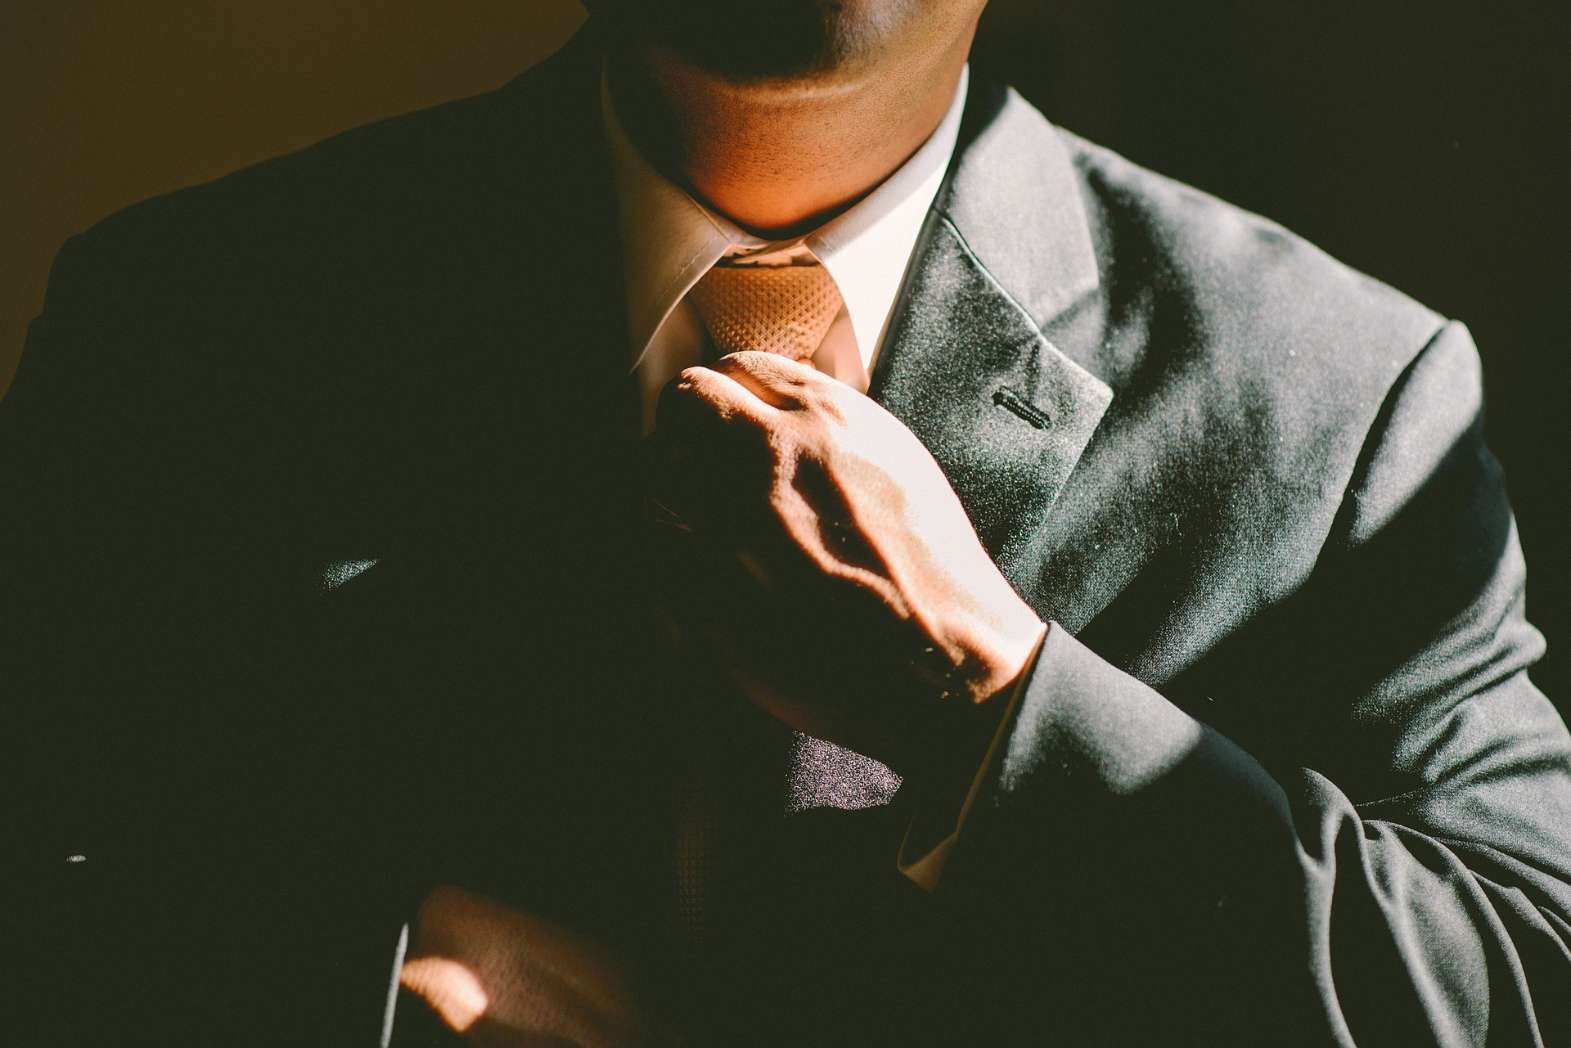 WHAT TO WEAR AND HOW TO BEHAVE IN COURT